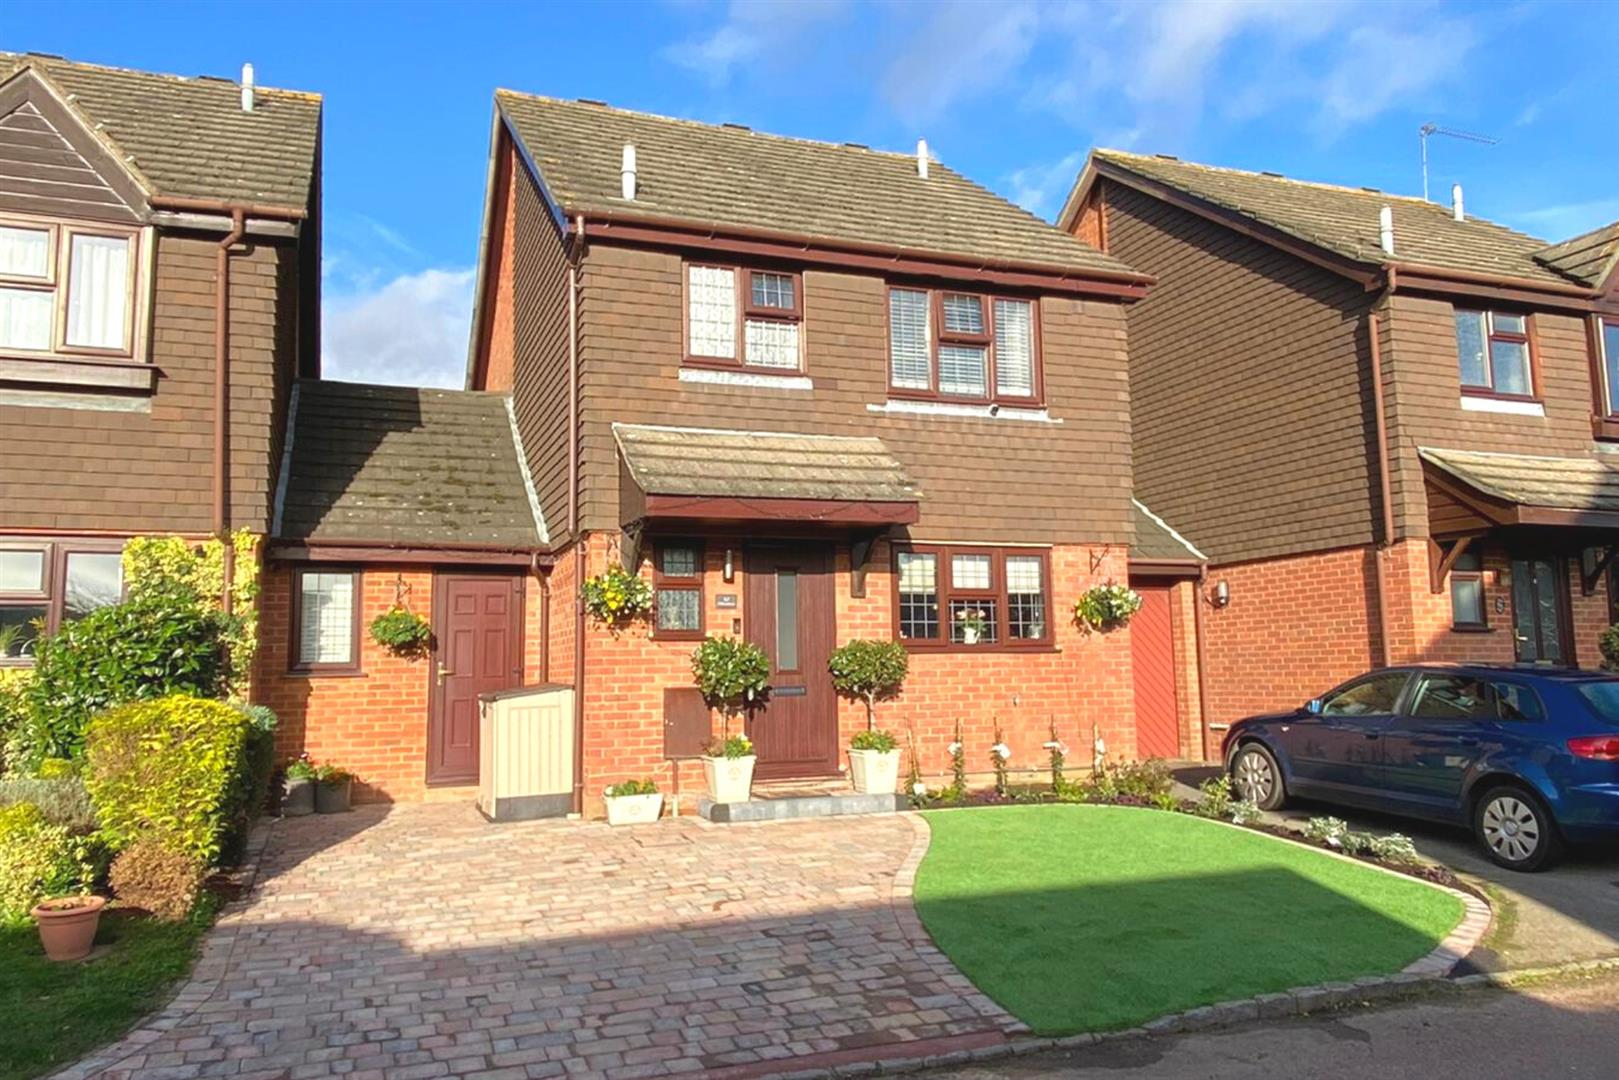 4 bed link detached house for sale in Lower Earley, RG6